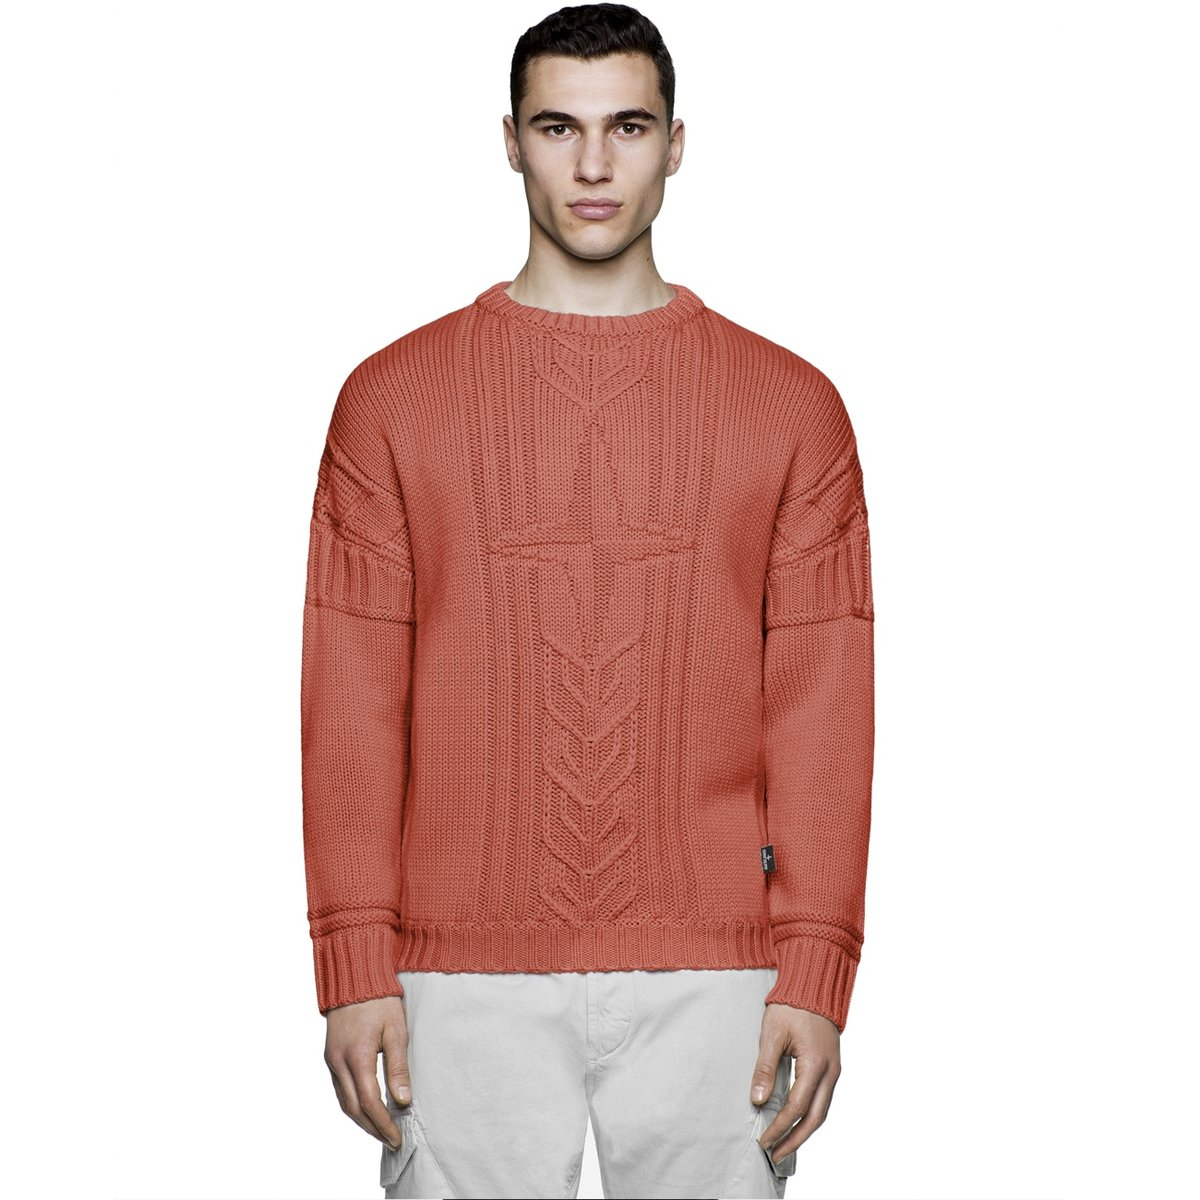 Stone Island cable knit sweater.jpg